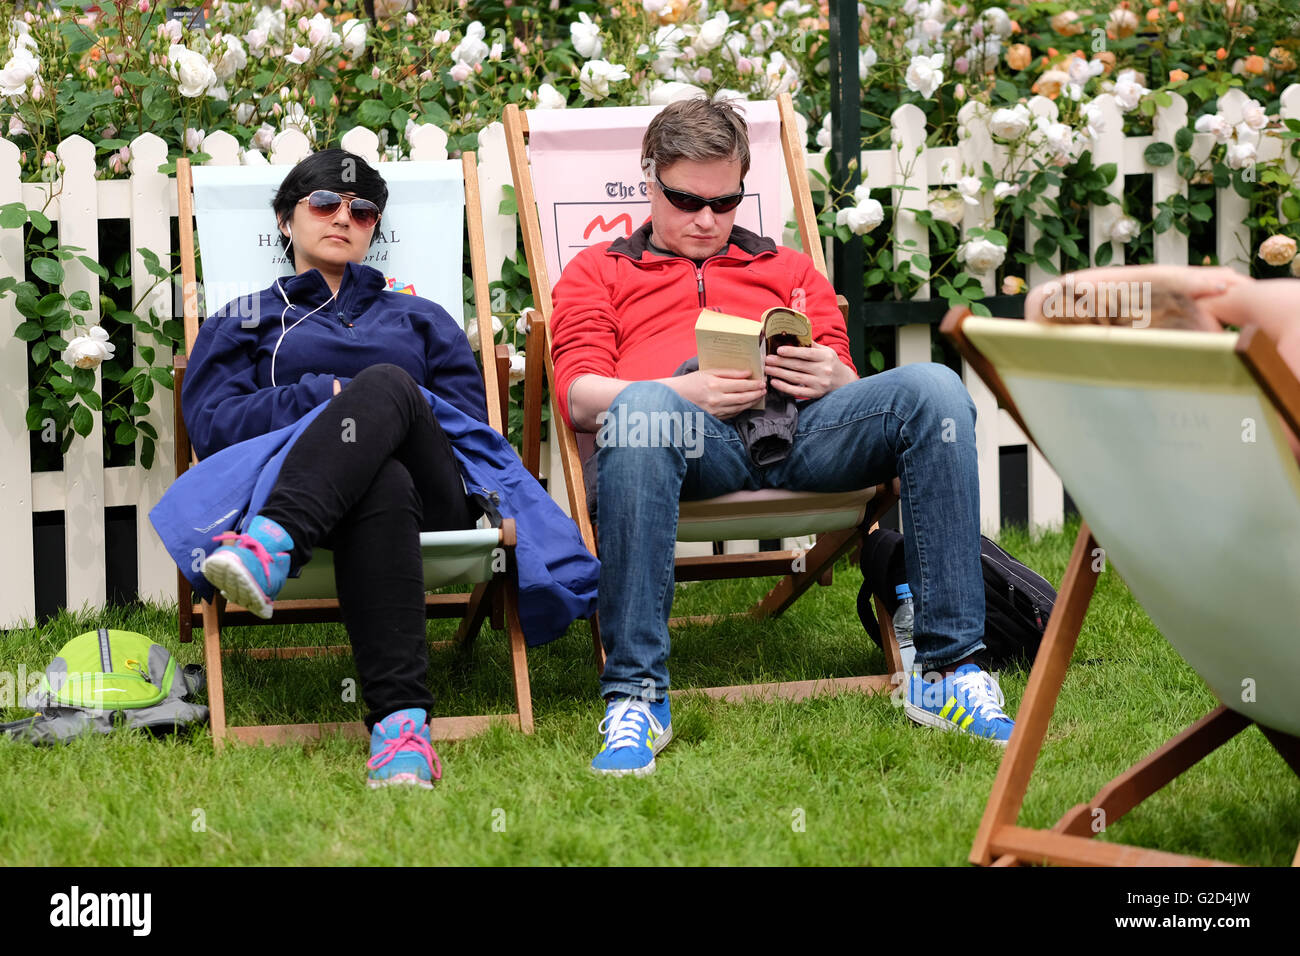 Hay Festival - Saturday 28th May 2016 -  The first weekend of the Hay Festival with visitors taking a break to rest - Stock Image